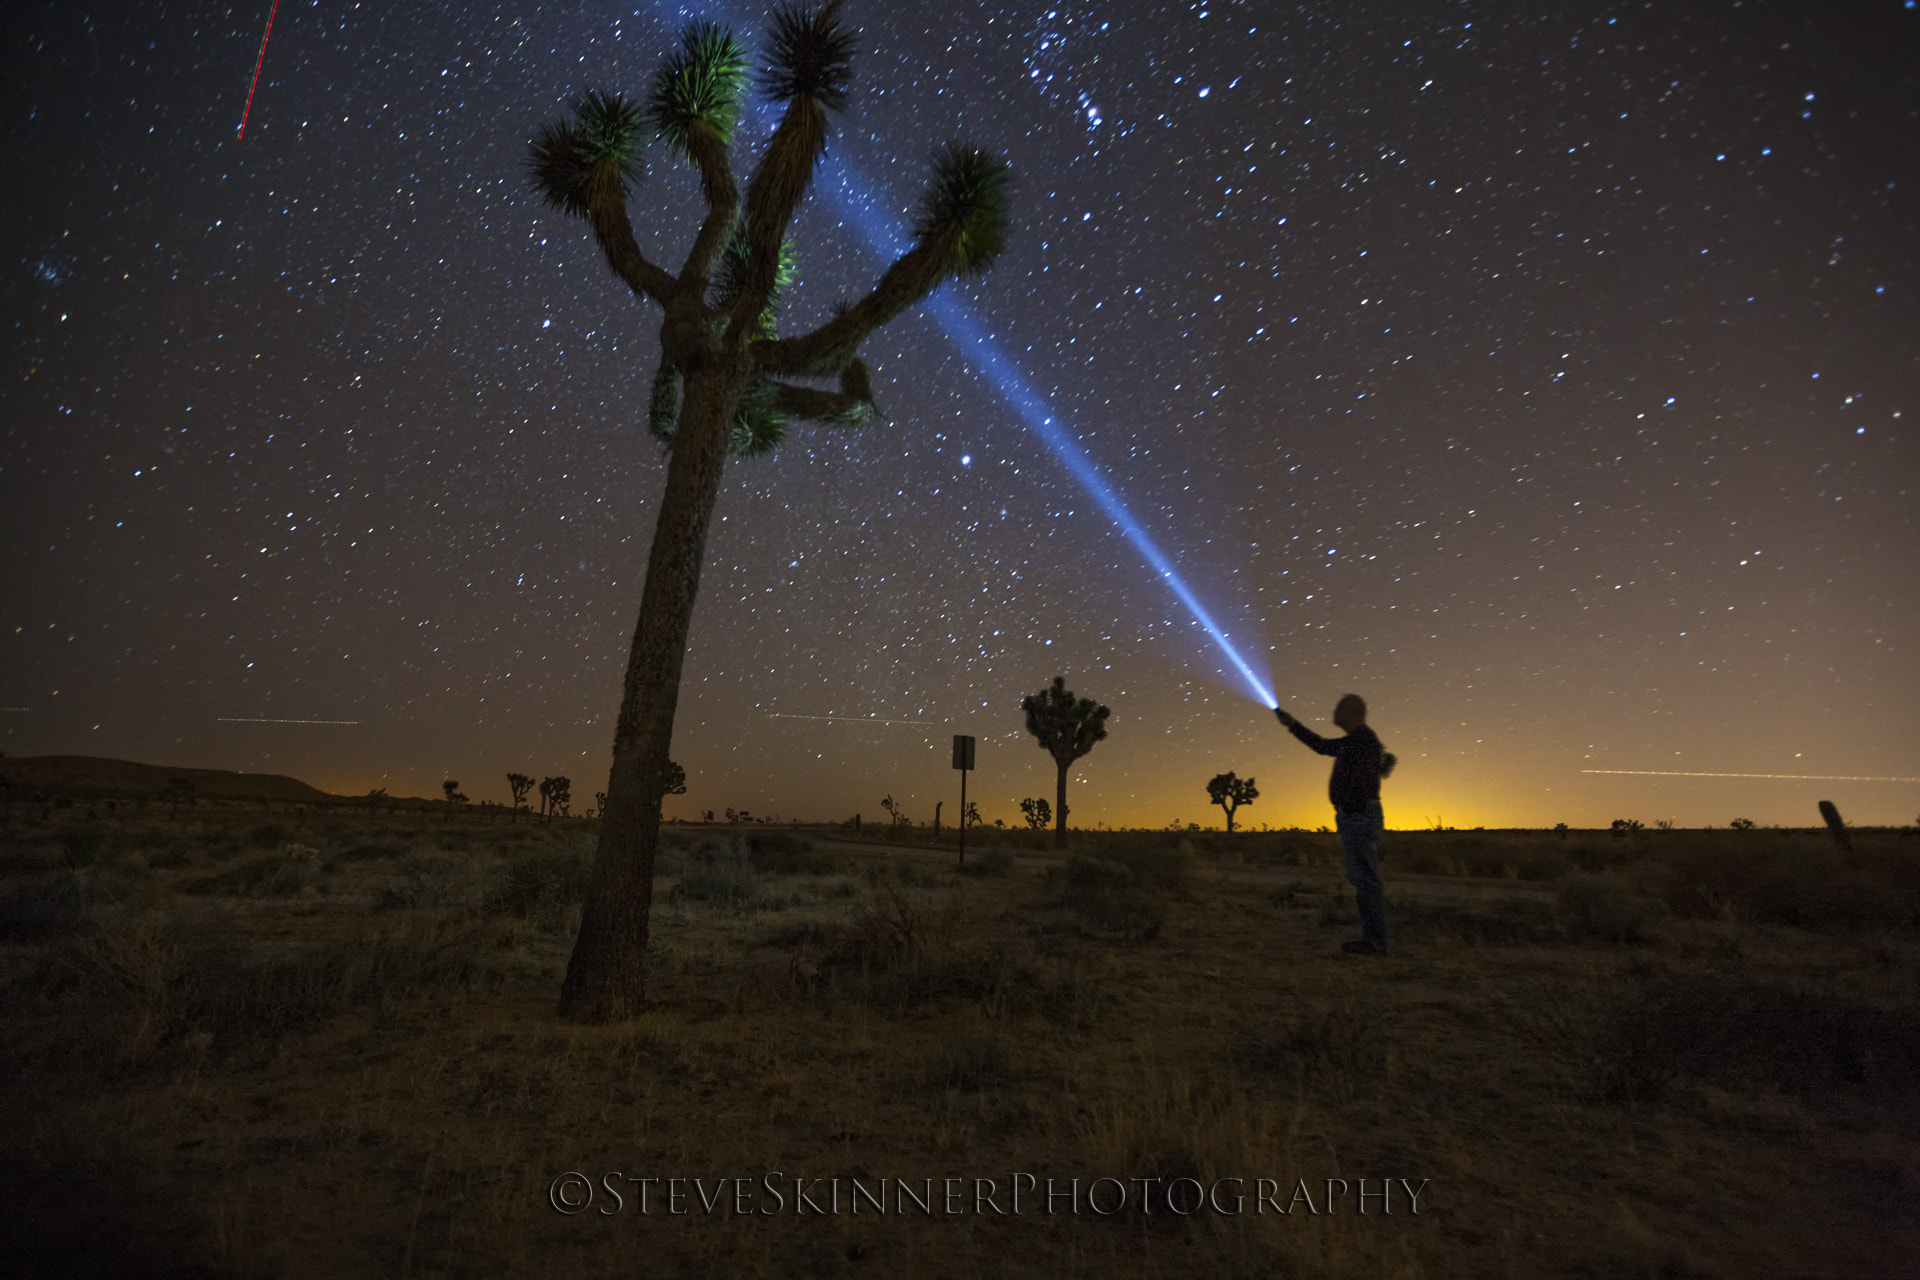 Photograph Stars and Rays - Joshua Tree by Steve Skinner on 500px